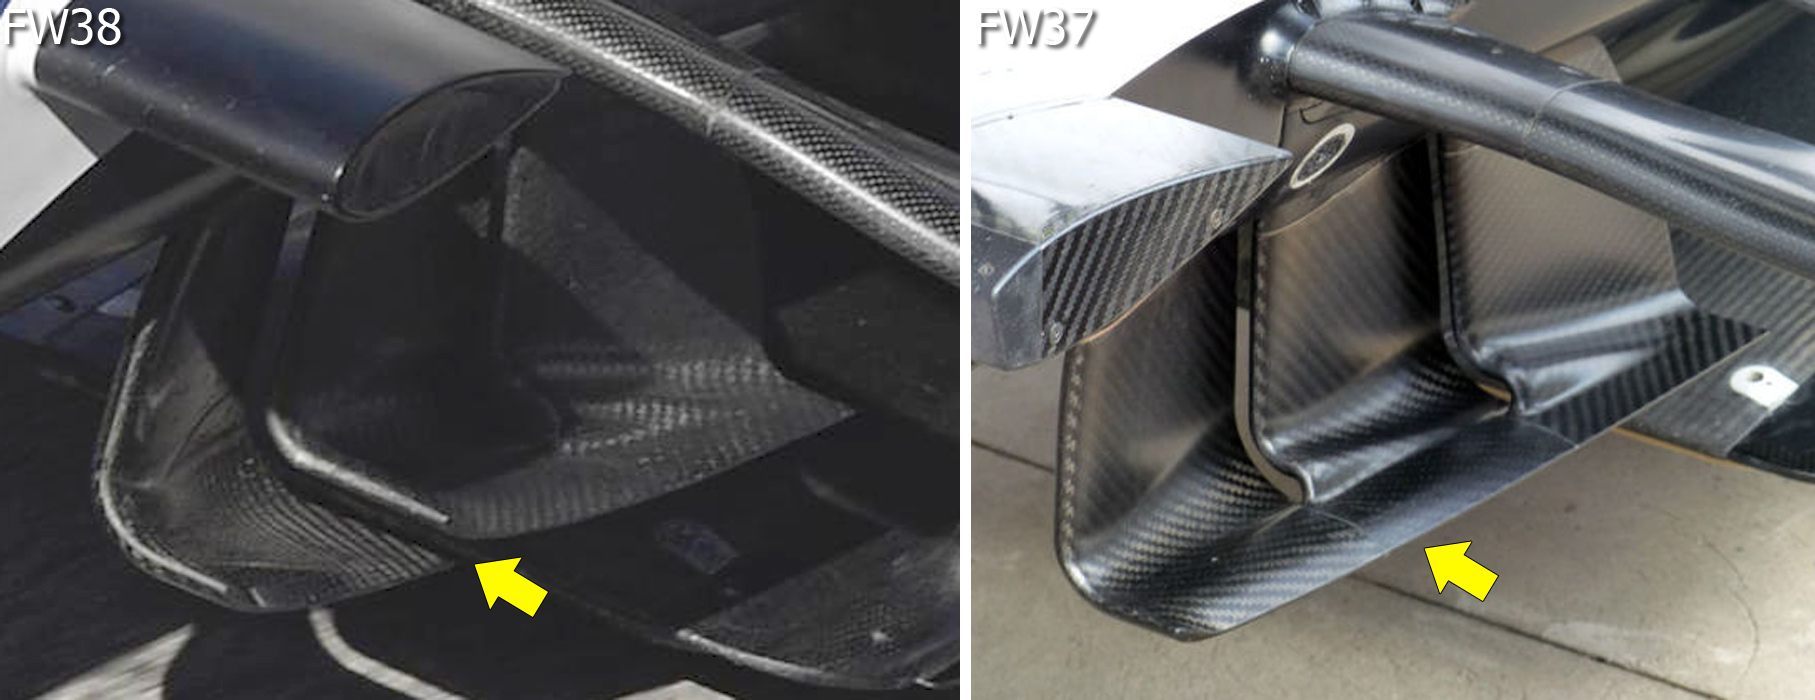 fw38-turning-vanes